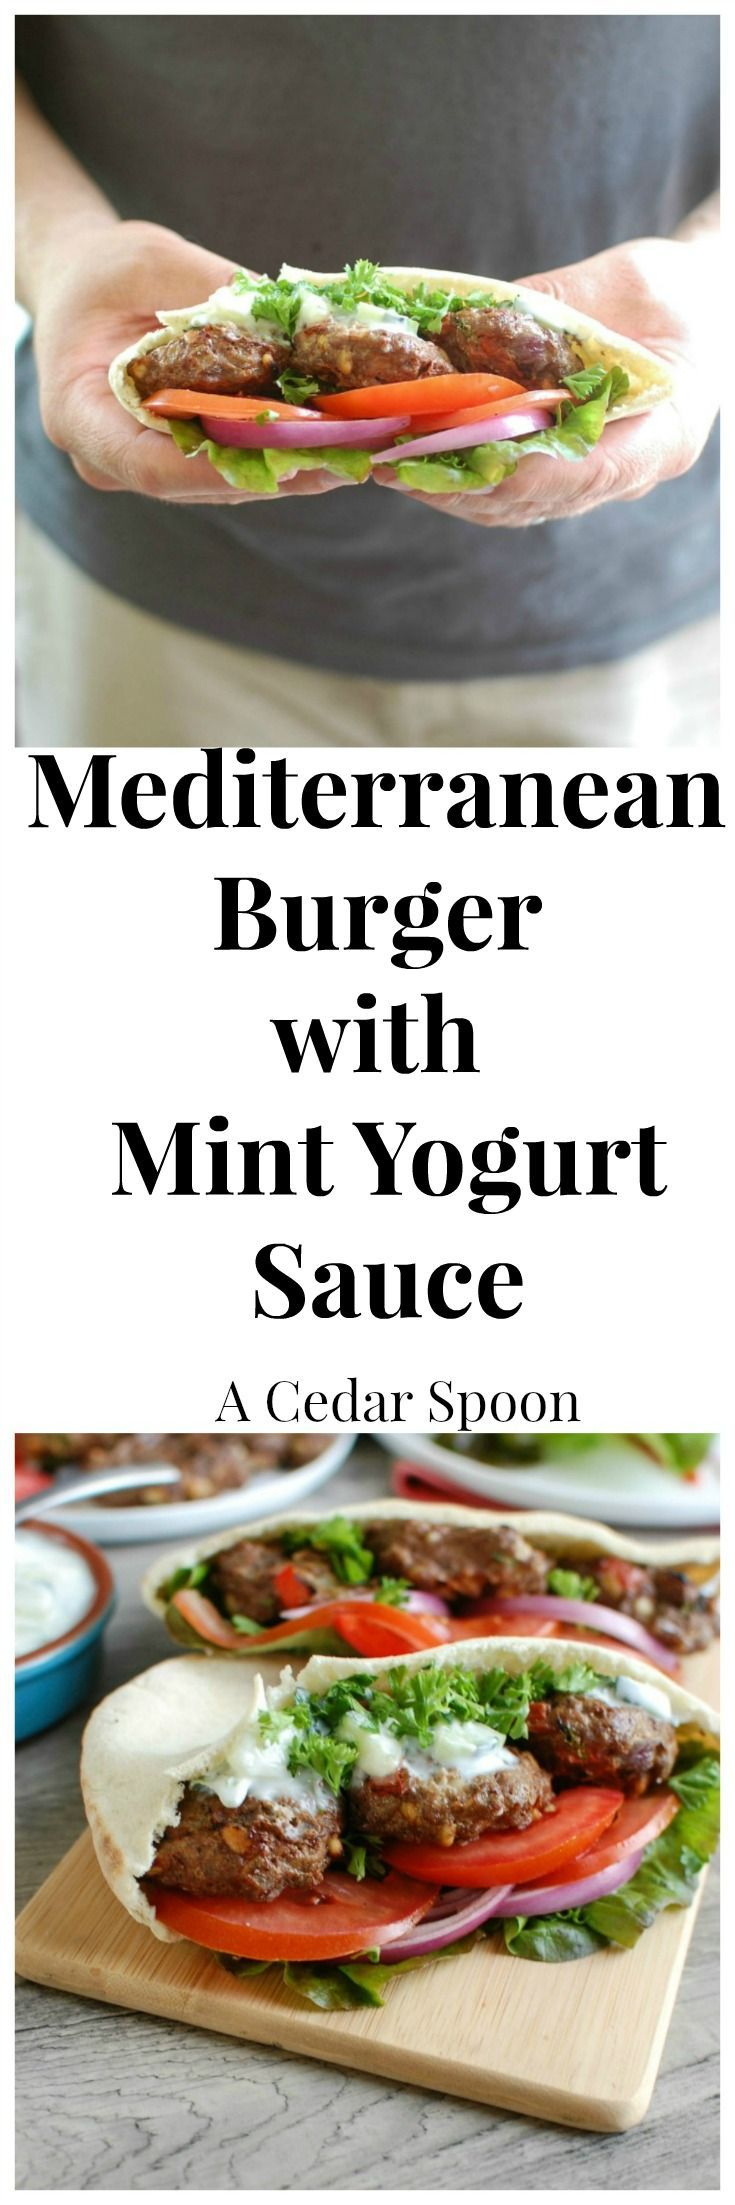 Mediterranean Burger with Mint Yogurt Sauce is a fun twist on traditional hamburgers using your favorite Mediterranean flavors and ingredients. This burger is served on a pita pocket with a flavorful tzatziki sauce.  Grilling season never tasted so good!// A Cedar Spoon